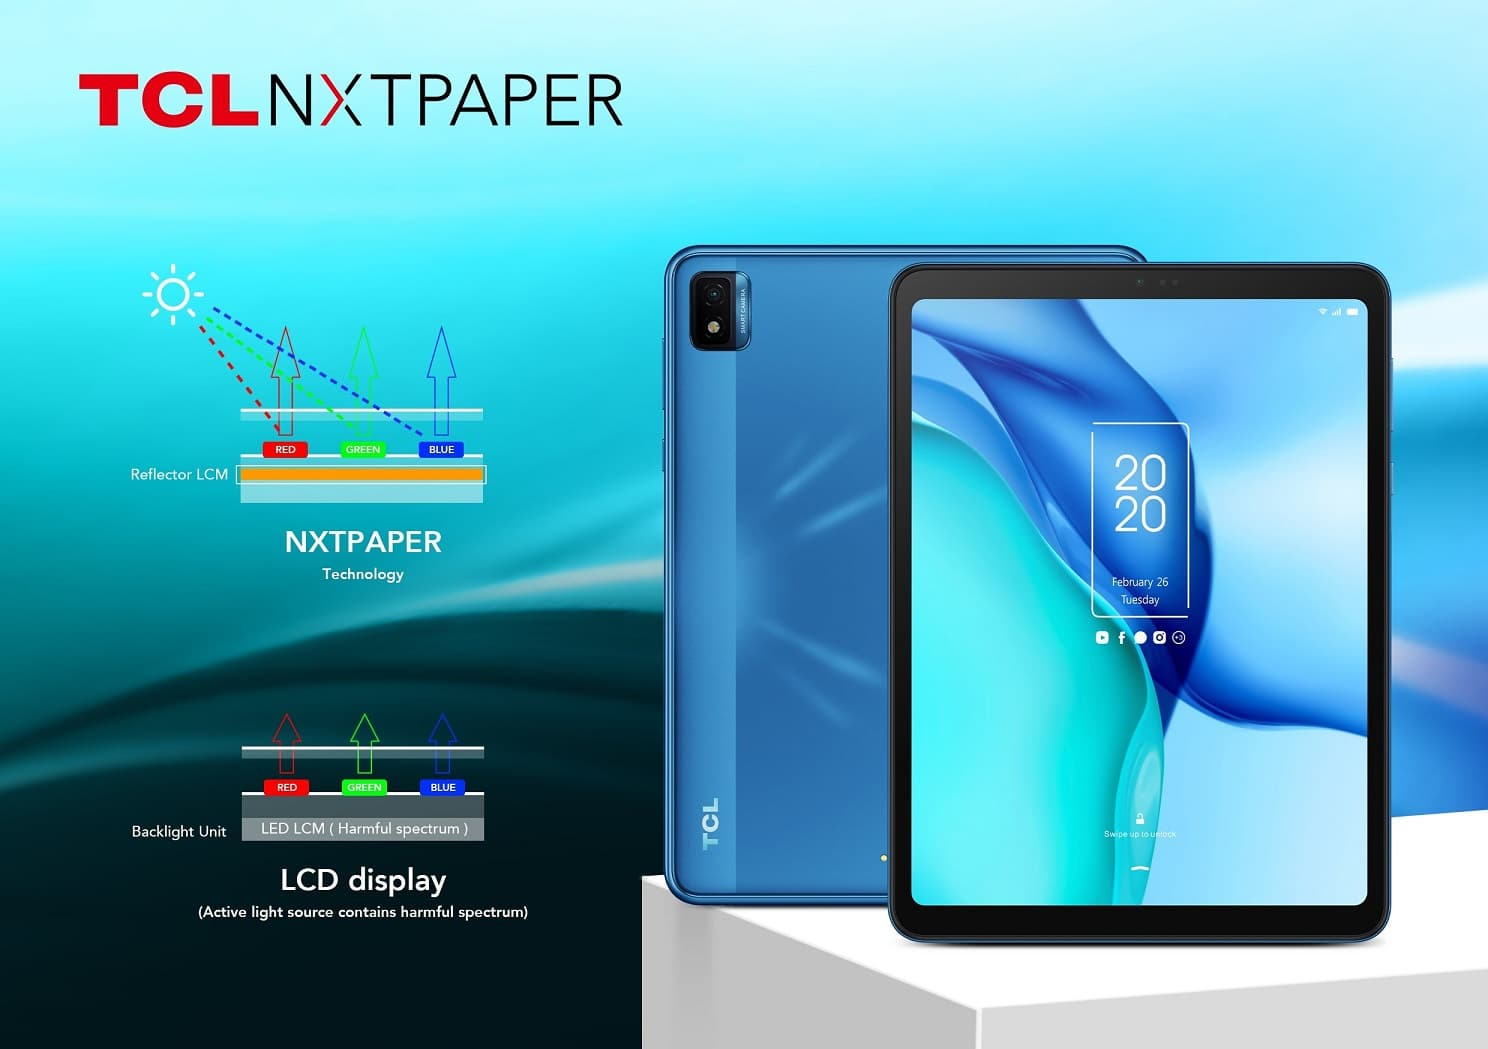 TCL NXTPAPER